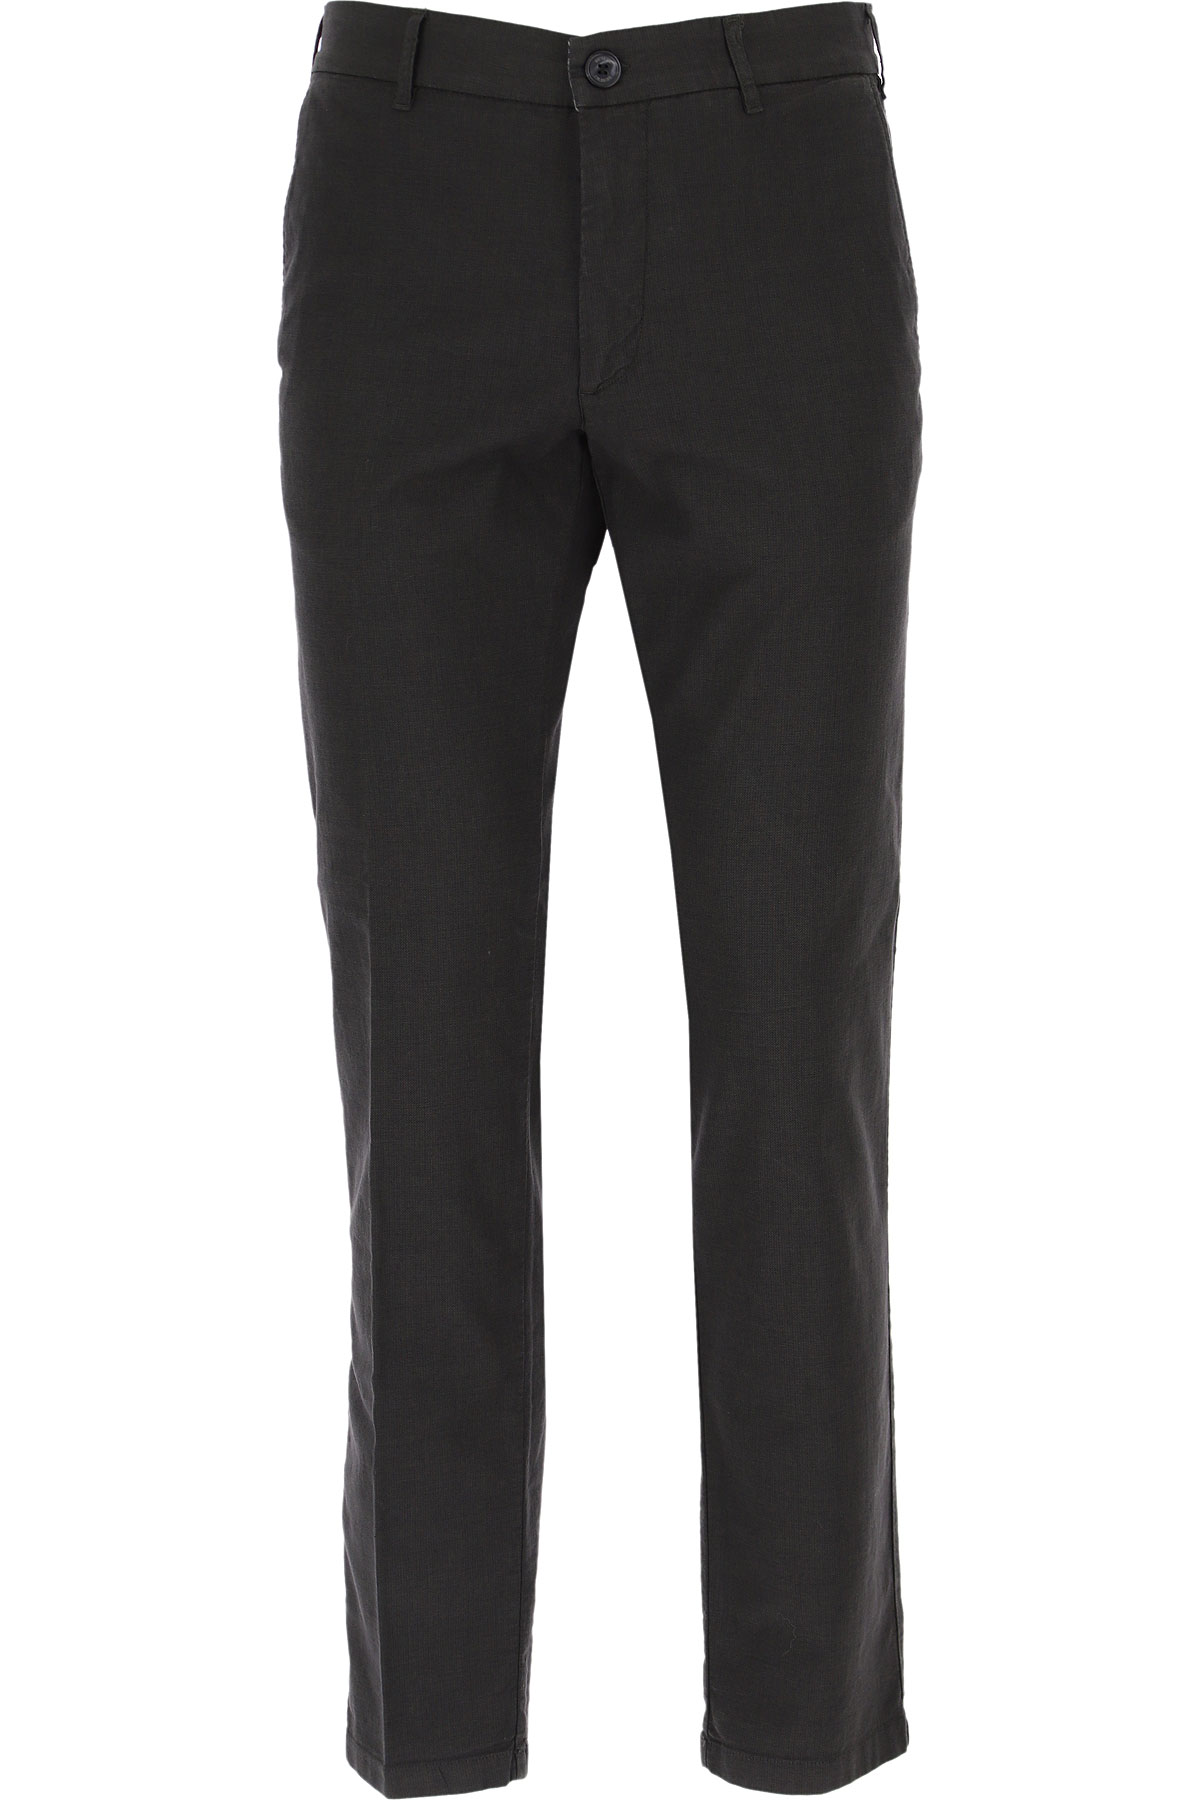 J.W. Brine Pants for Men On Sale, antracite, Cotton, 2019, 32 34 36 38